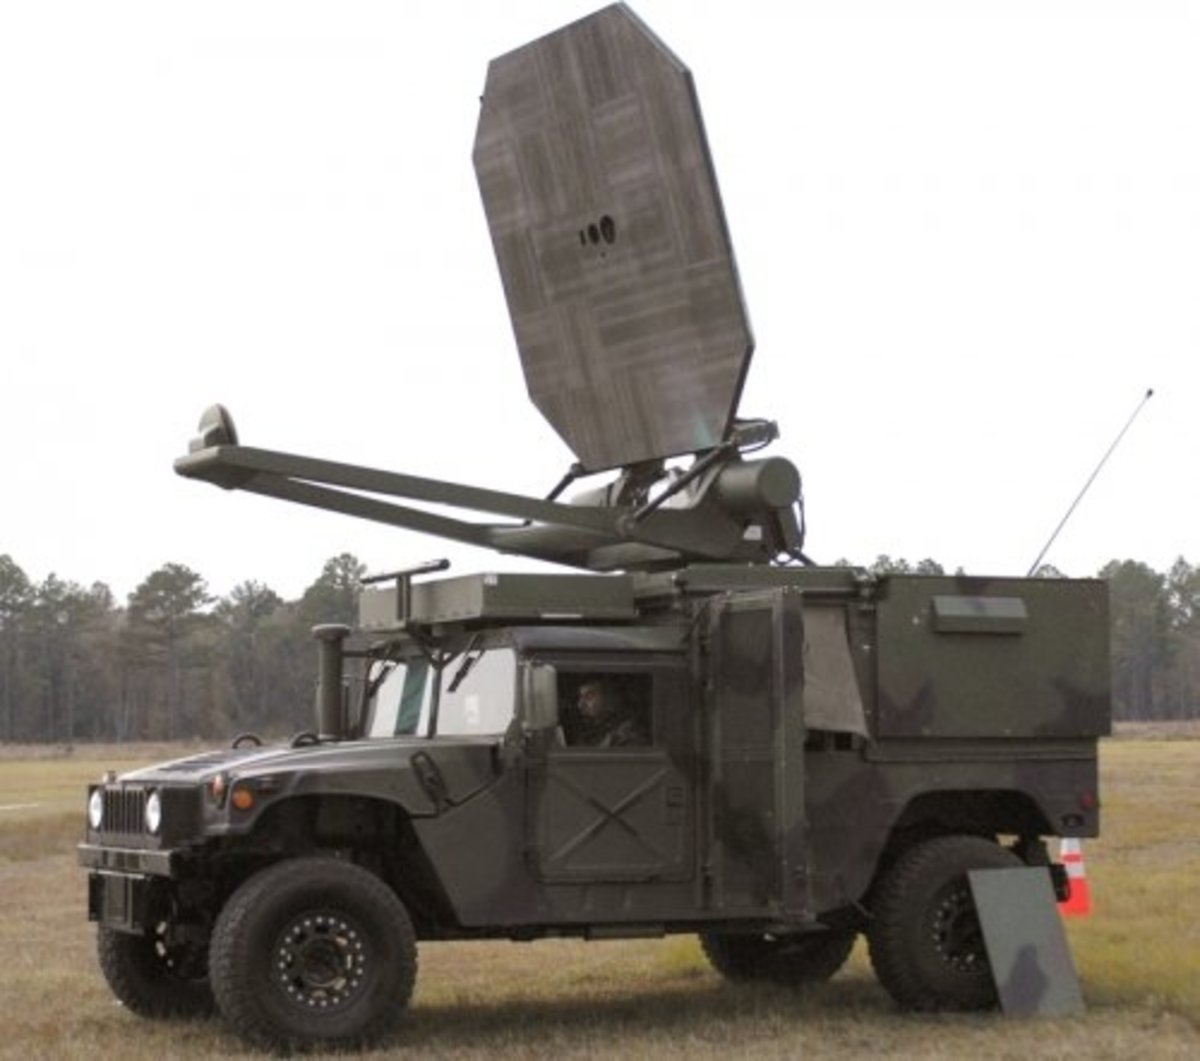 Though not an EMP weapon, this however is a microwave beam weapon in use in battle fields. As a beam weapon it can be aimed and focused on a specific target and cook it from the inside out like a microwave oven. This is used on enemy combatants and c